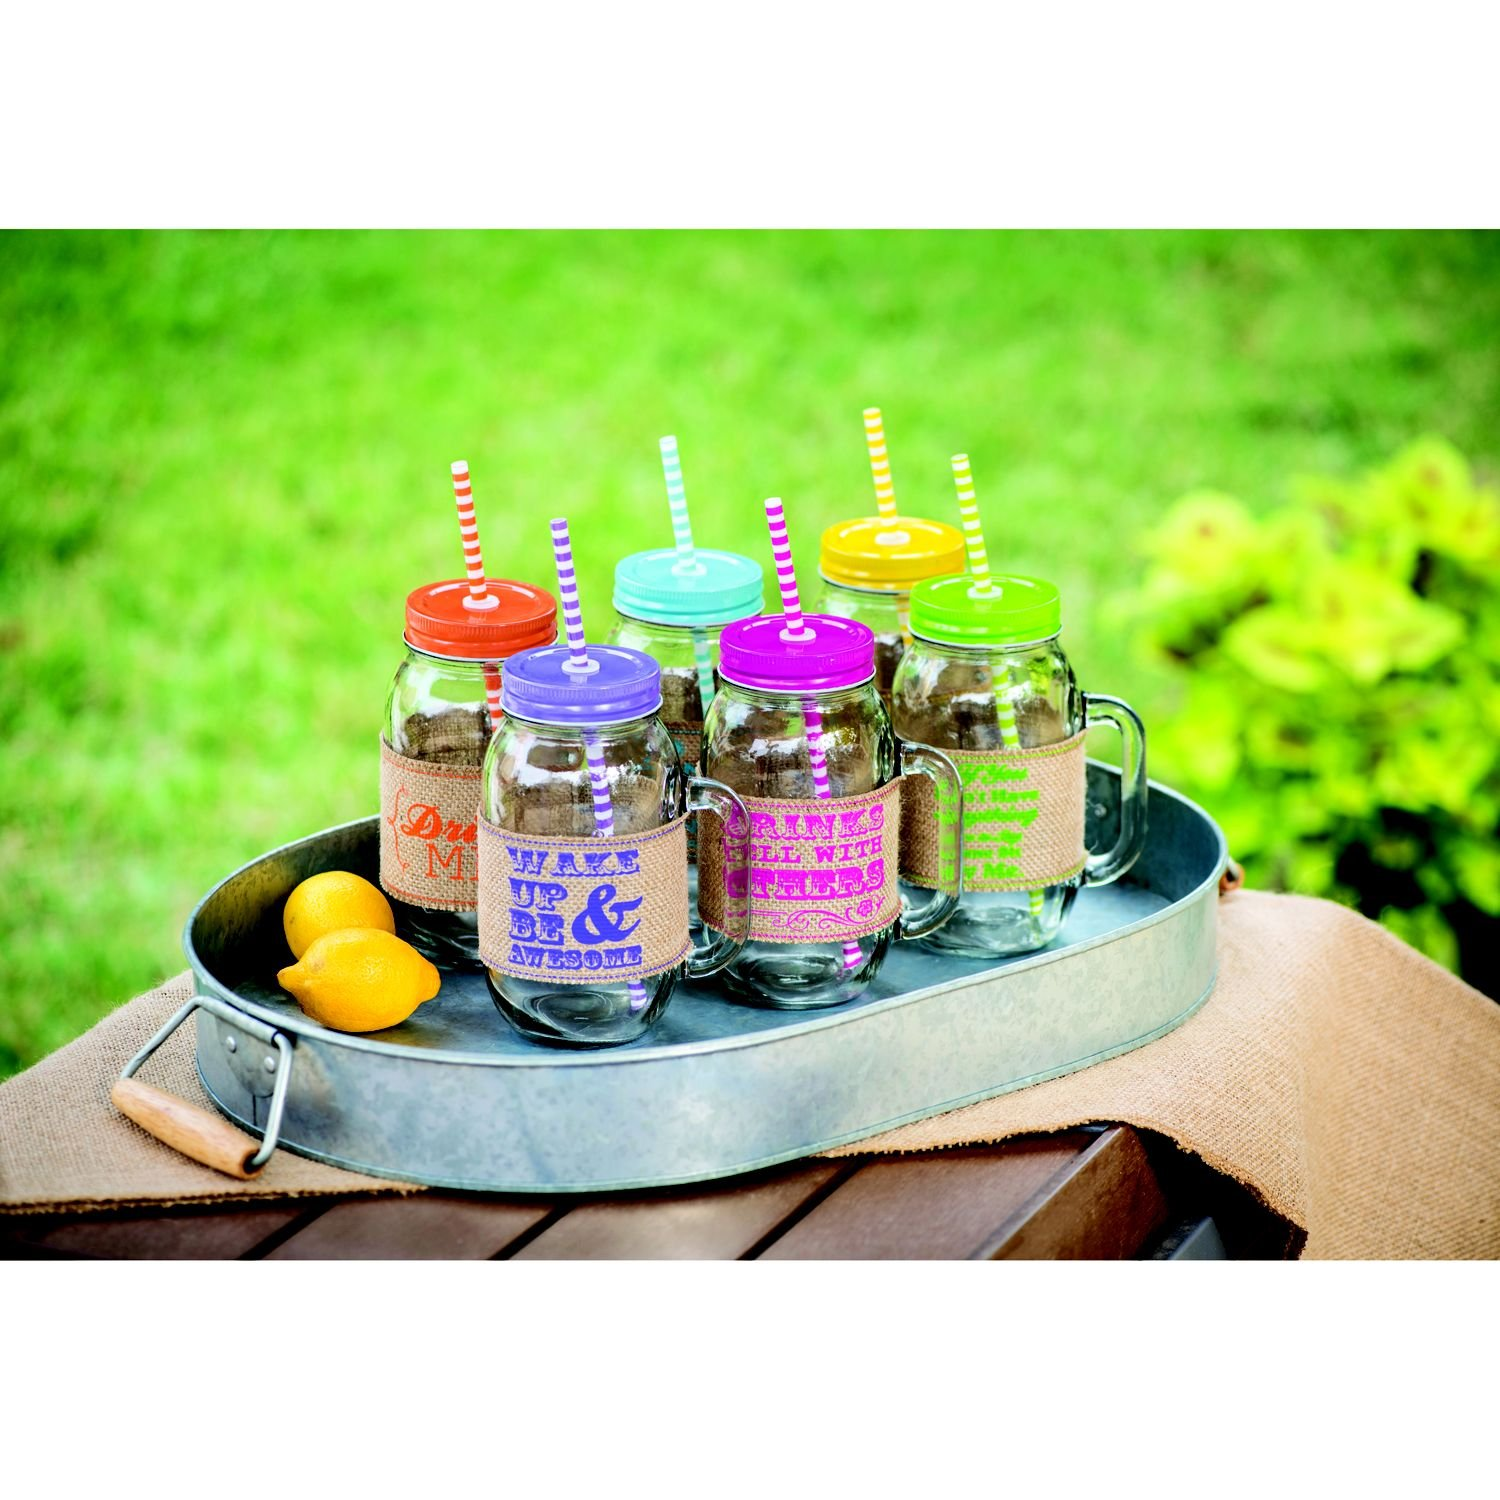 Mason Glass Jars 6 pc Set with Burlap Sleeves, Color Lids & 12 Reusable Straws